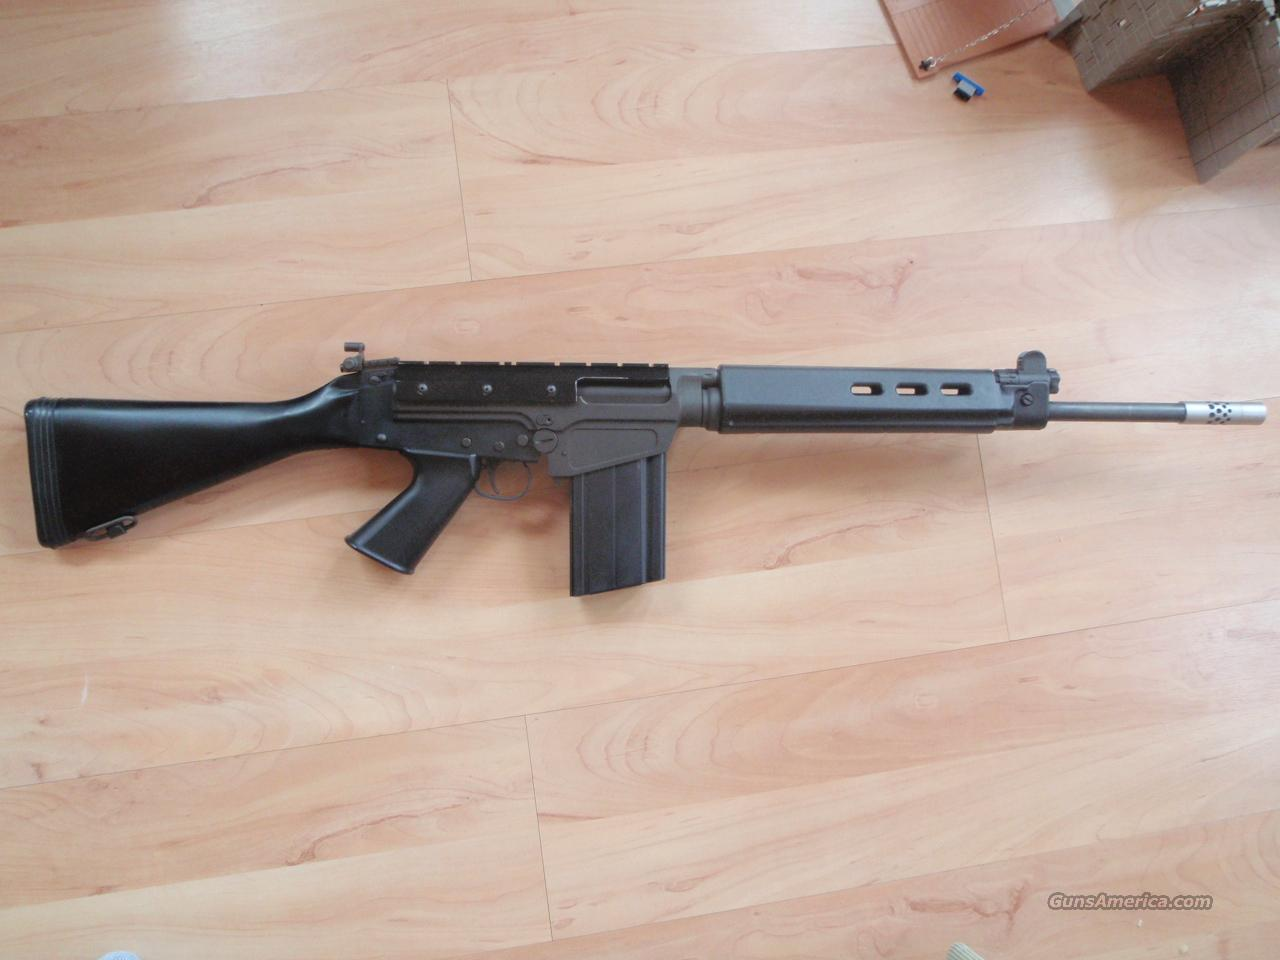 DS ARMS SA-58 fAL 308 7.62 EXC  Guns > Rifles > DSA Rifles (DS Arms) > FAL type